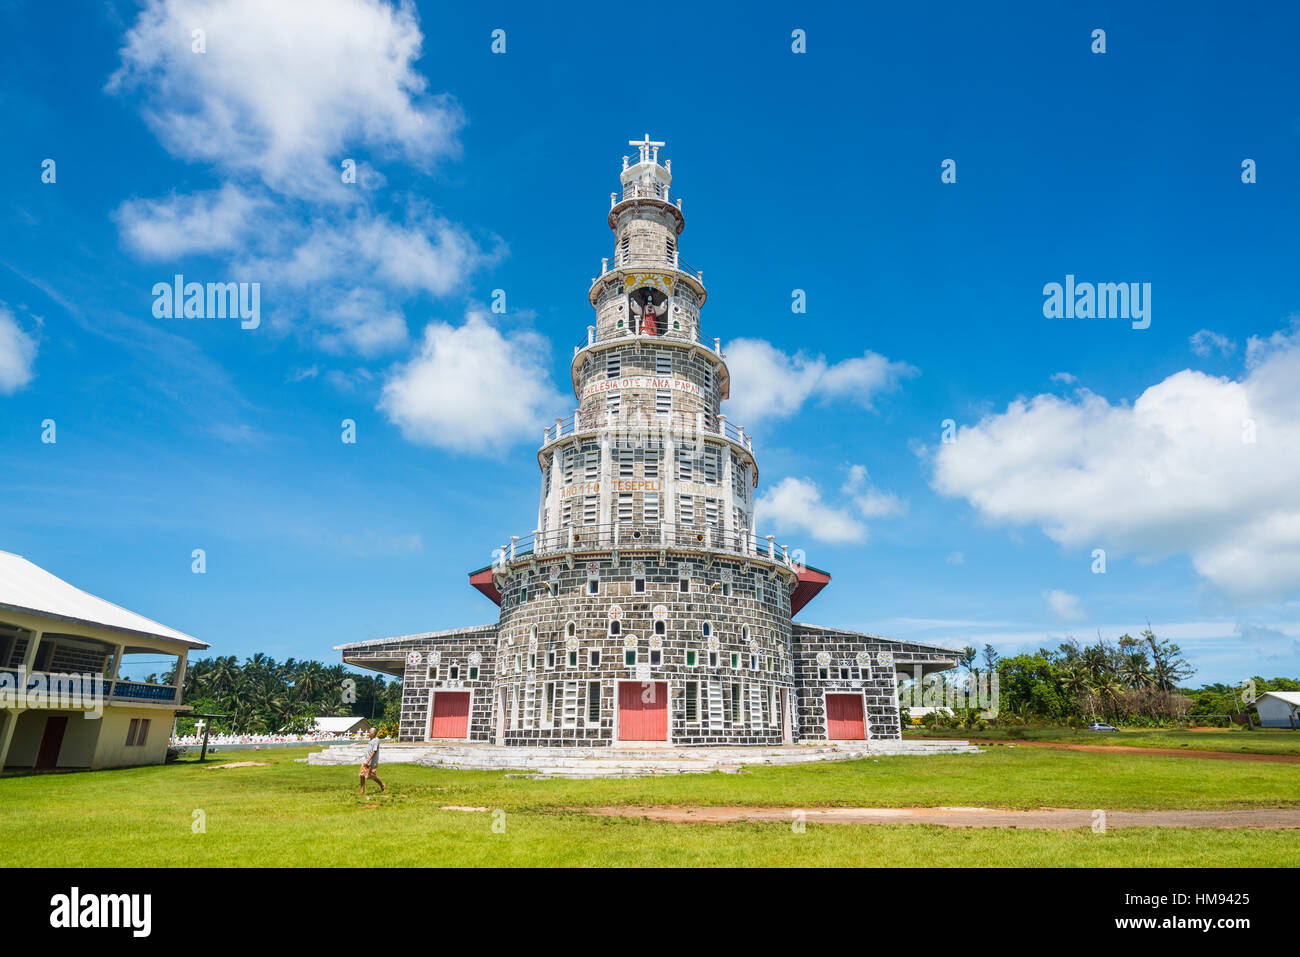 Church of the Sacred Heart, Matautu, Wallis Island, Wallis and Futuna, Melanesia, South Pacific, Pacific - Stock Image